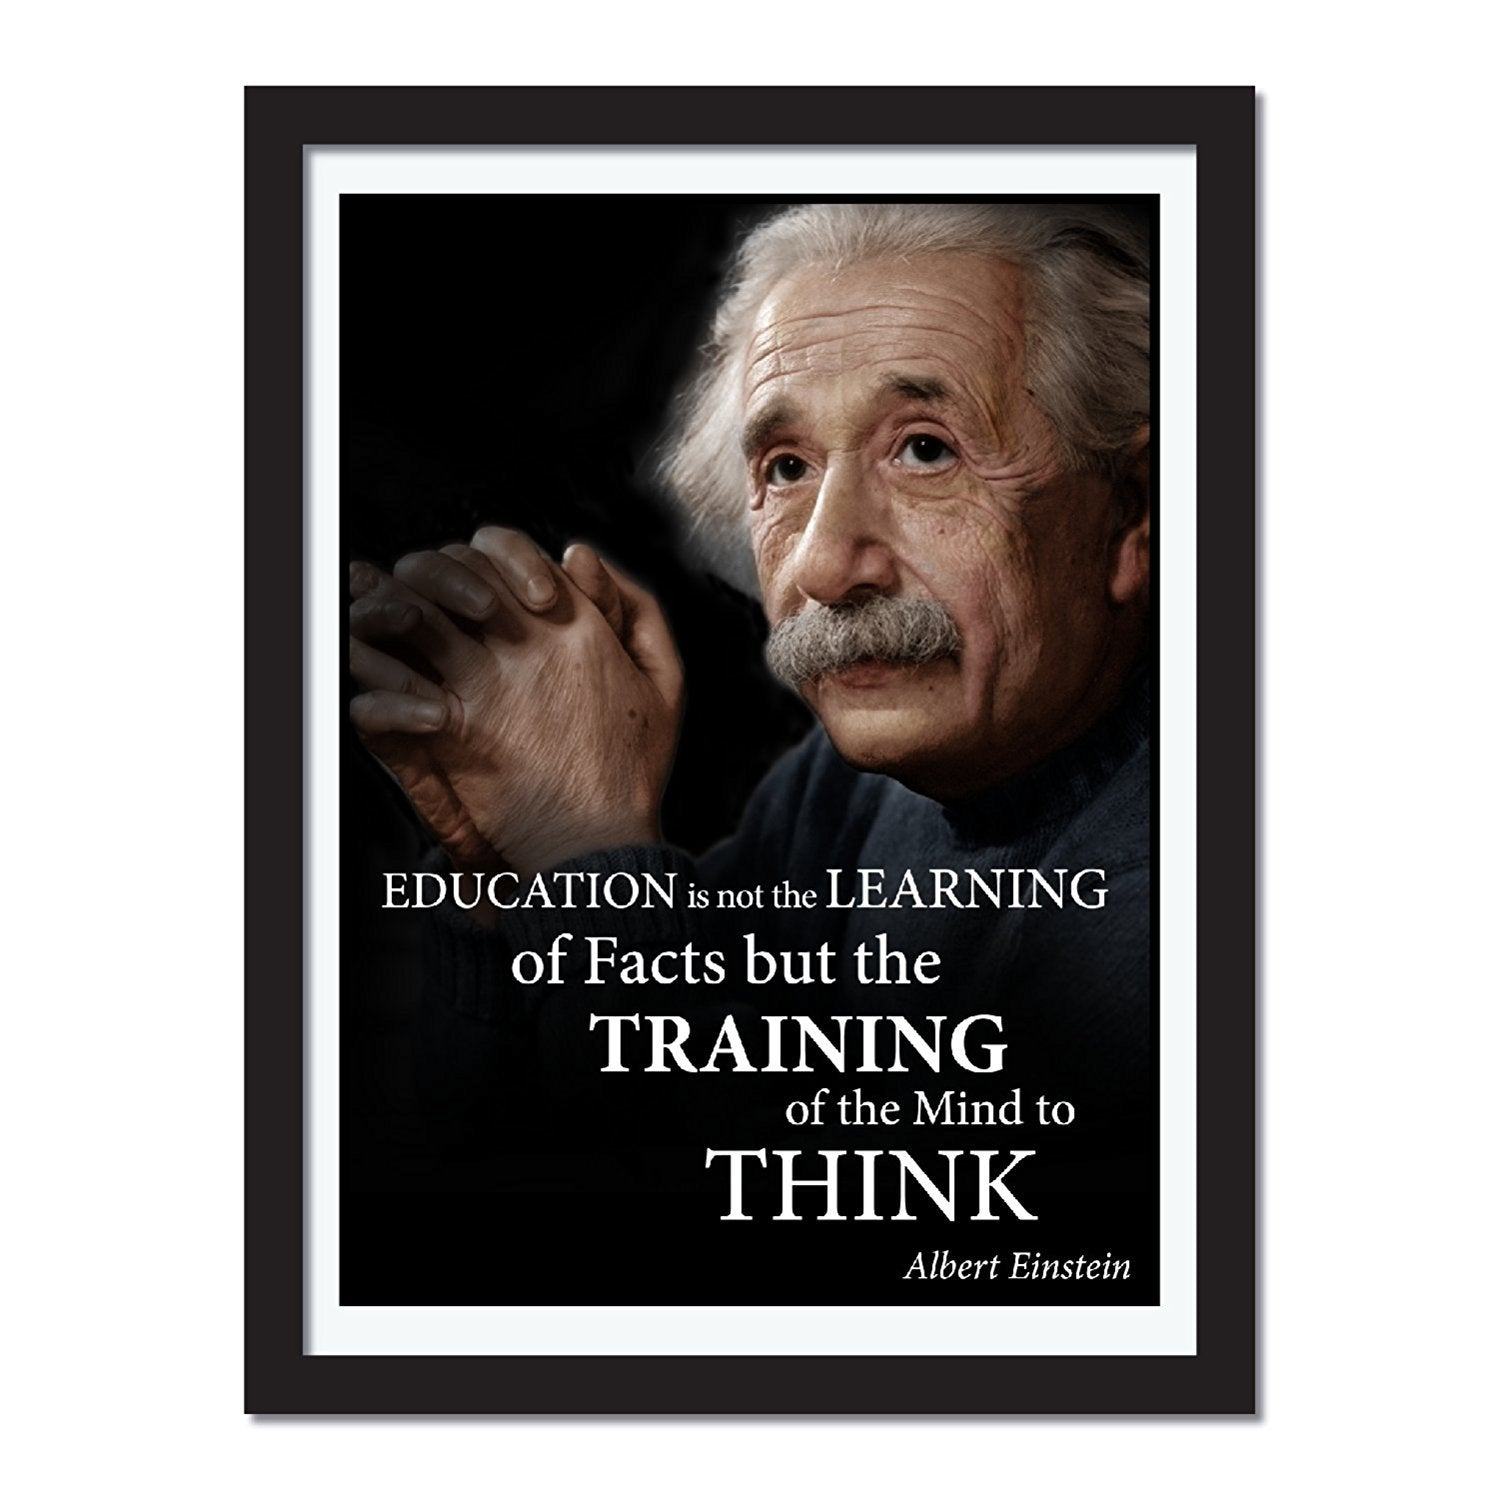 Albert Einstein education portrait poster quote print wall art - Young N' Refined